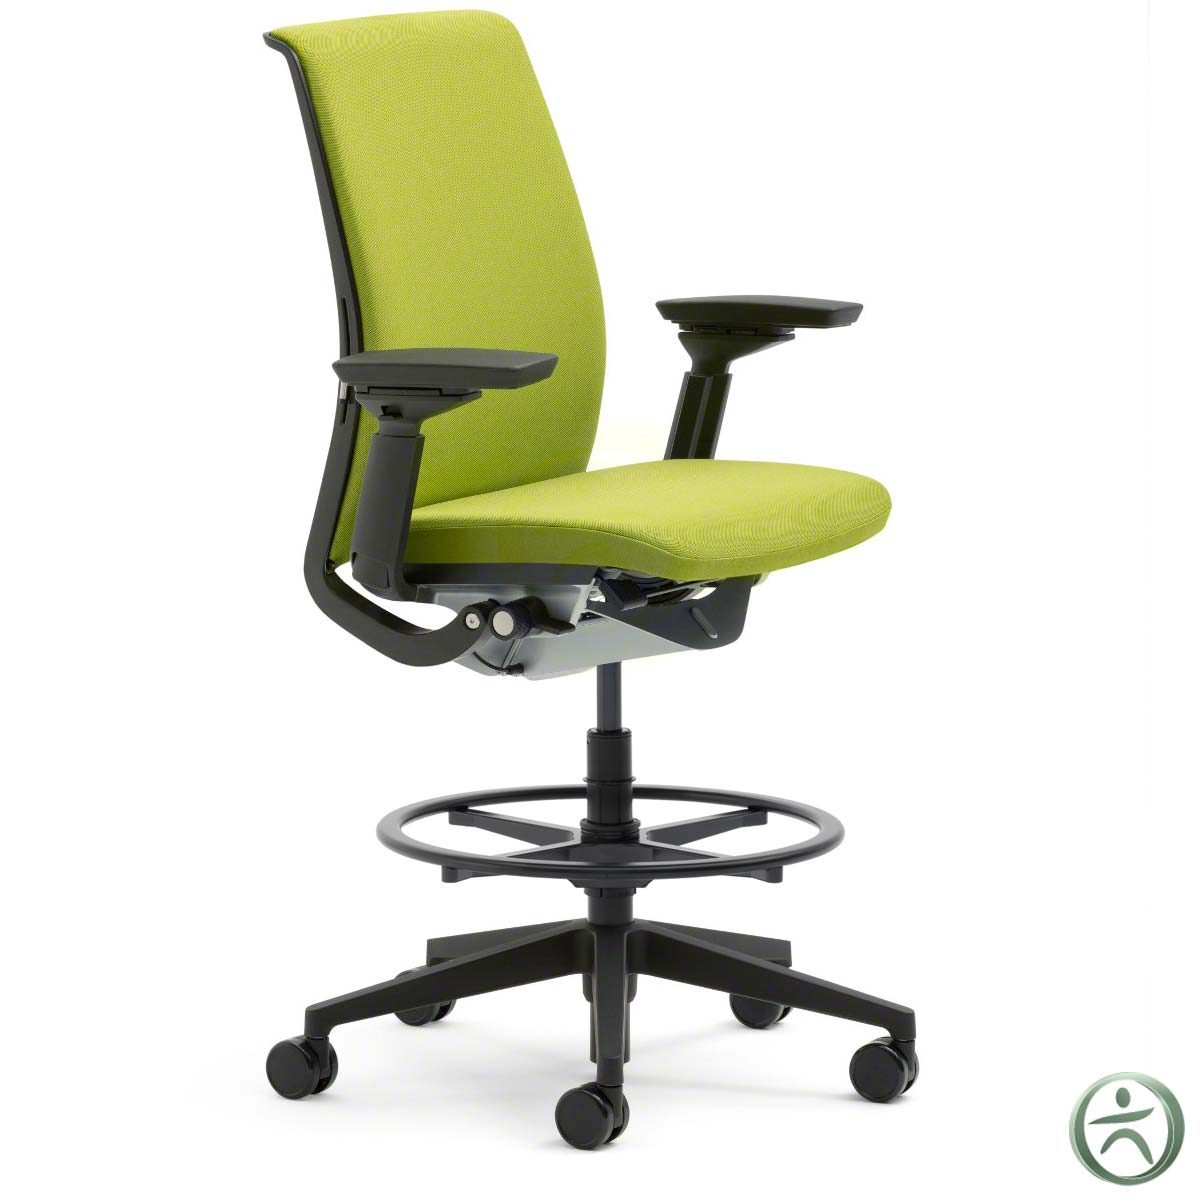 office chair back support with Steelcase Think Stool In Fabric on JFKWHP 1962 08 09 D also Office Chair Mesh 2 moreover Swoon Lounge Chair additionally Regulations Regarding Fire Codes Osha For Exit Clearance For Multiple Employees also 3486777.